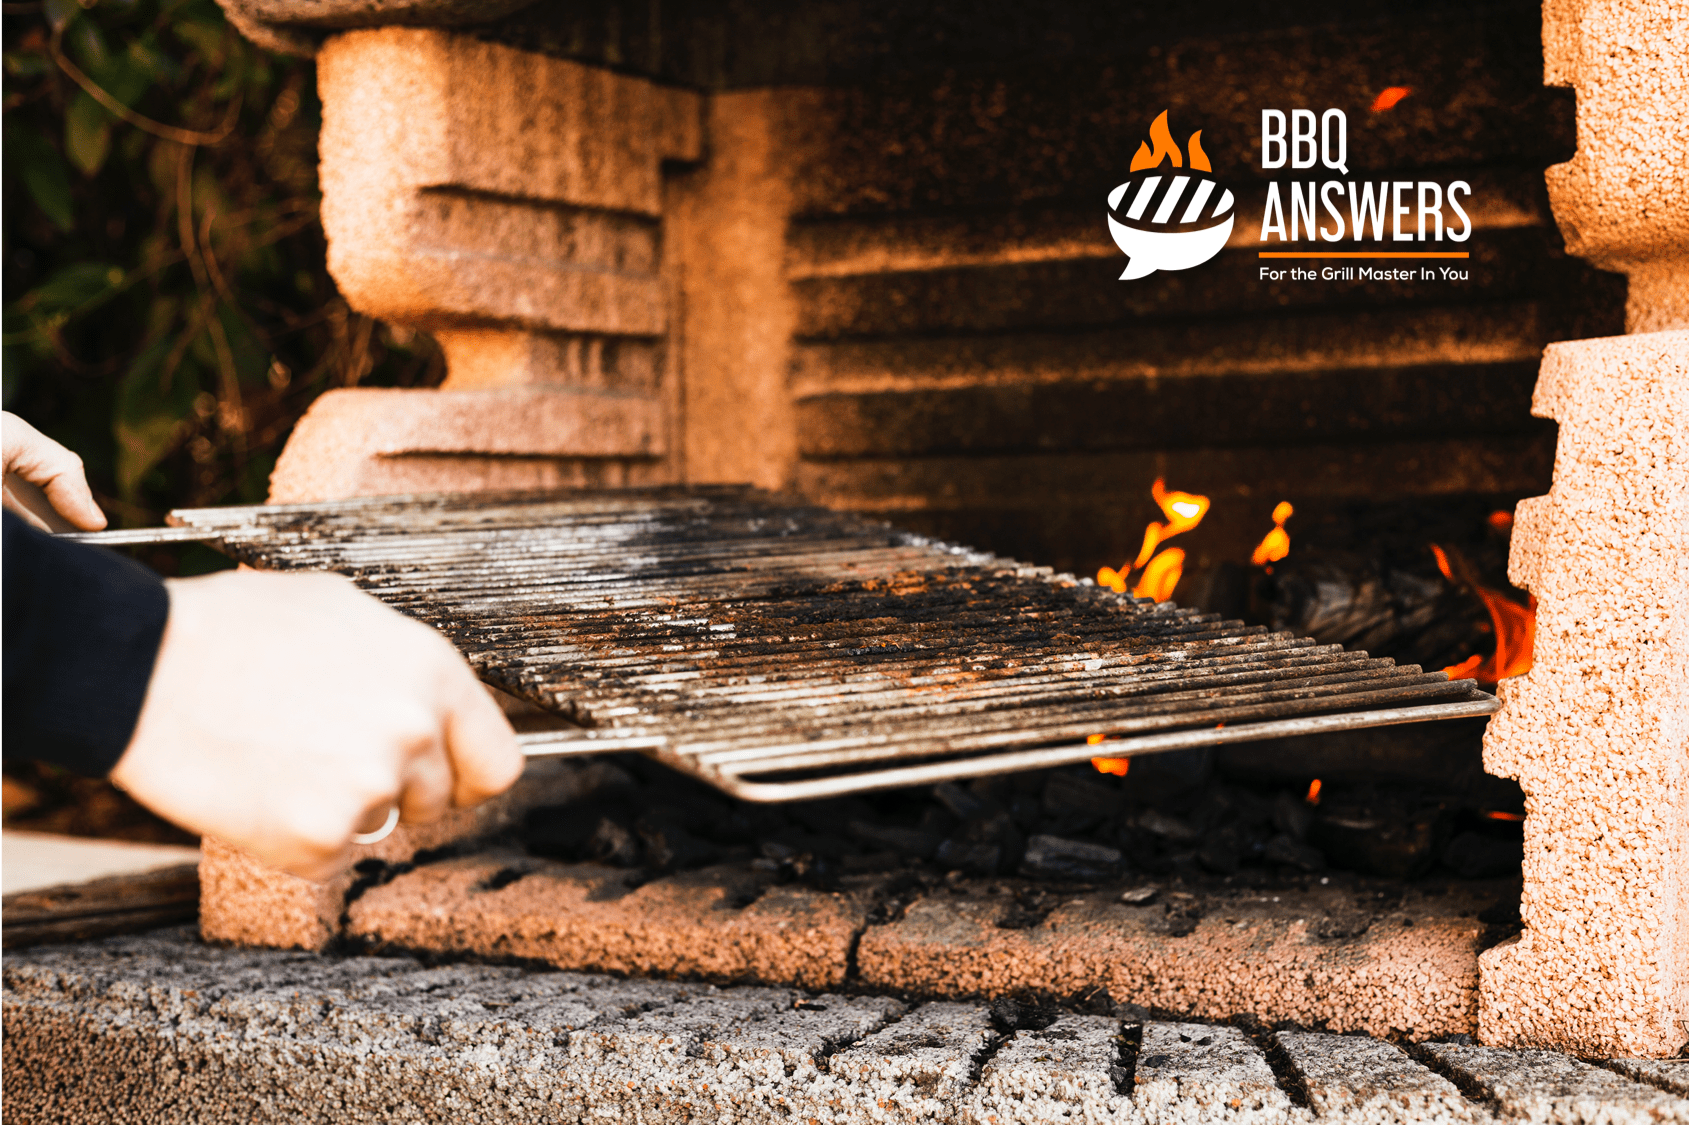 Why Stainless Steel BBQ Grill Rust?   BBQanswers